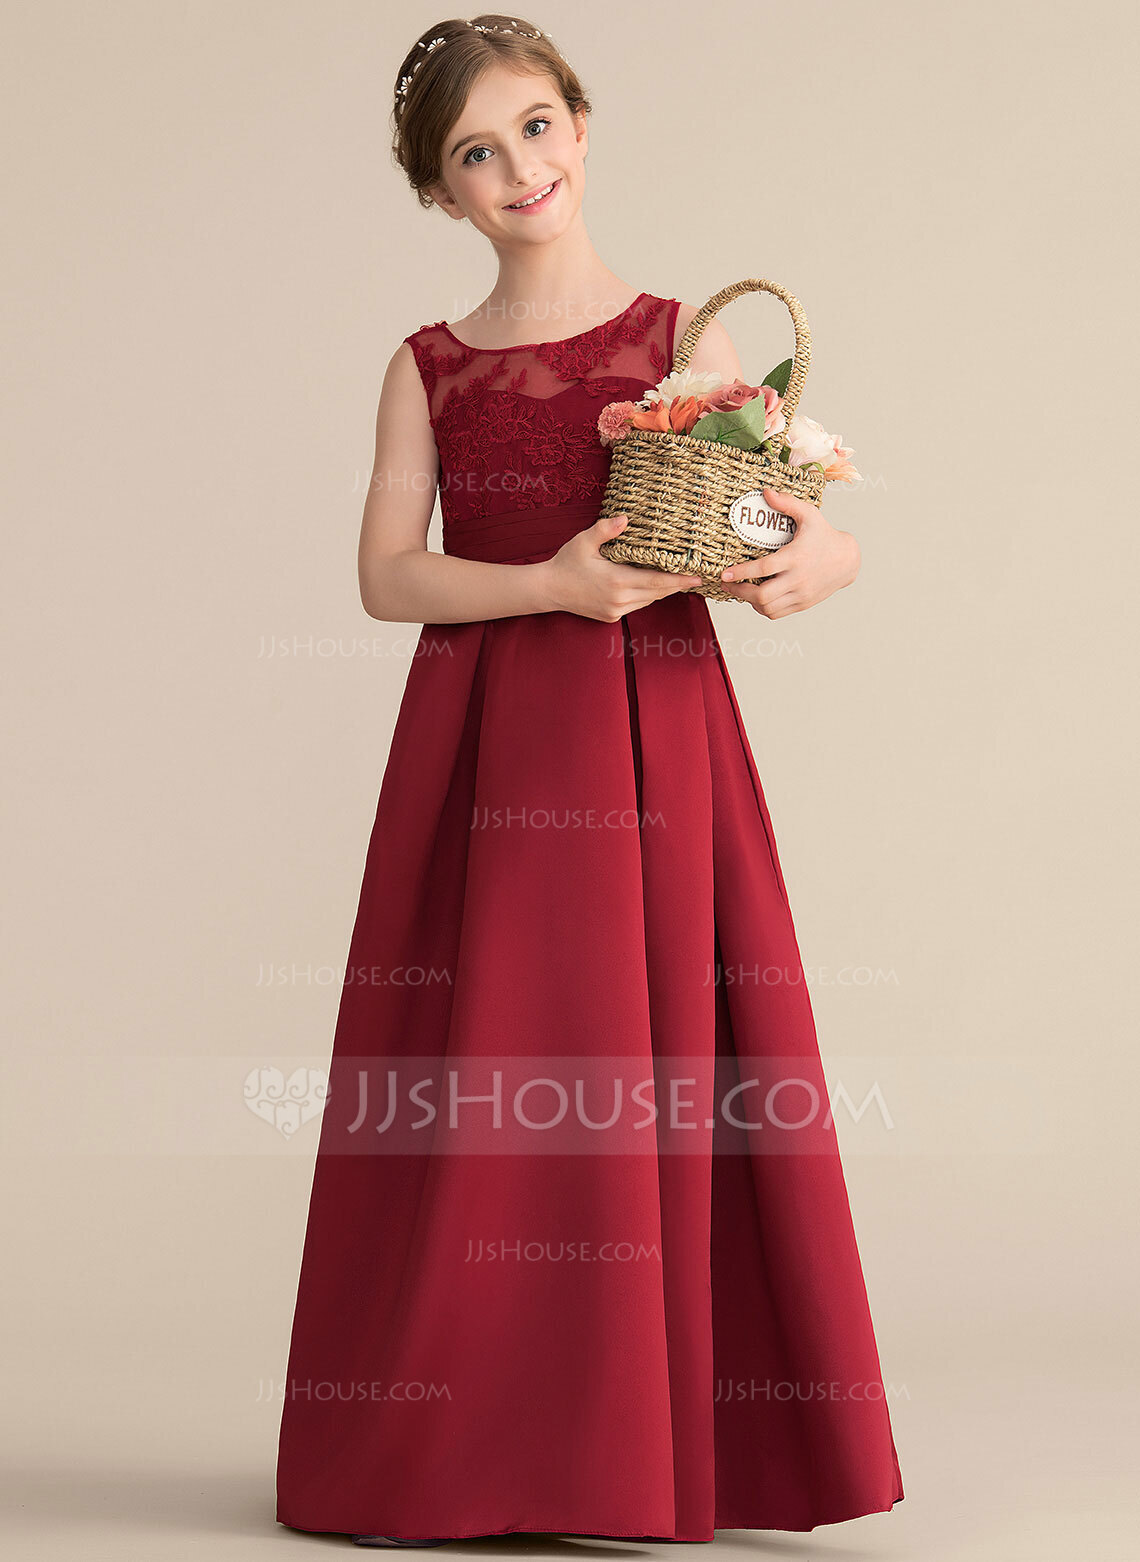 A-Line Scoop Neck Floor-Length Satin Lace Junior Bridesmaid Dress With Ruffle Bow(s)